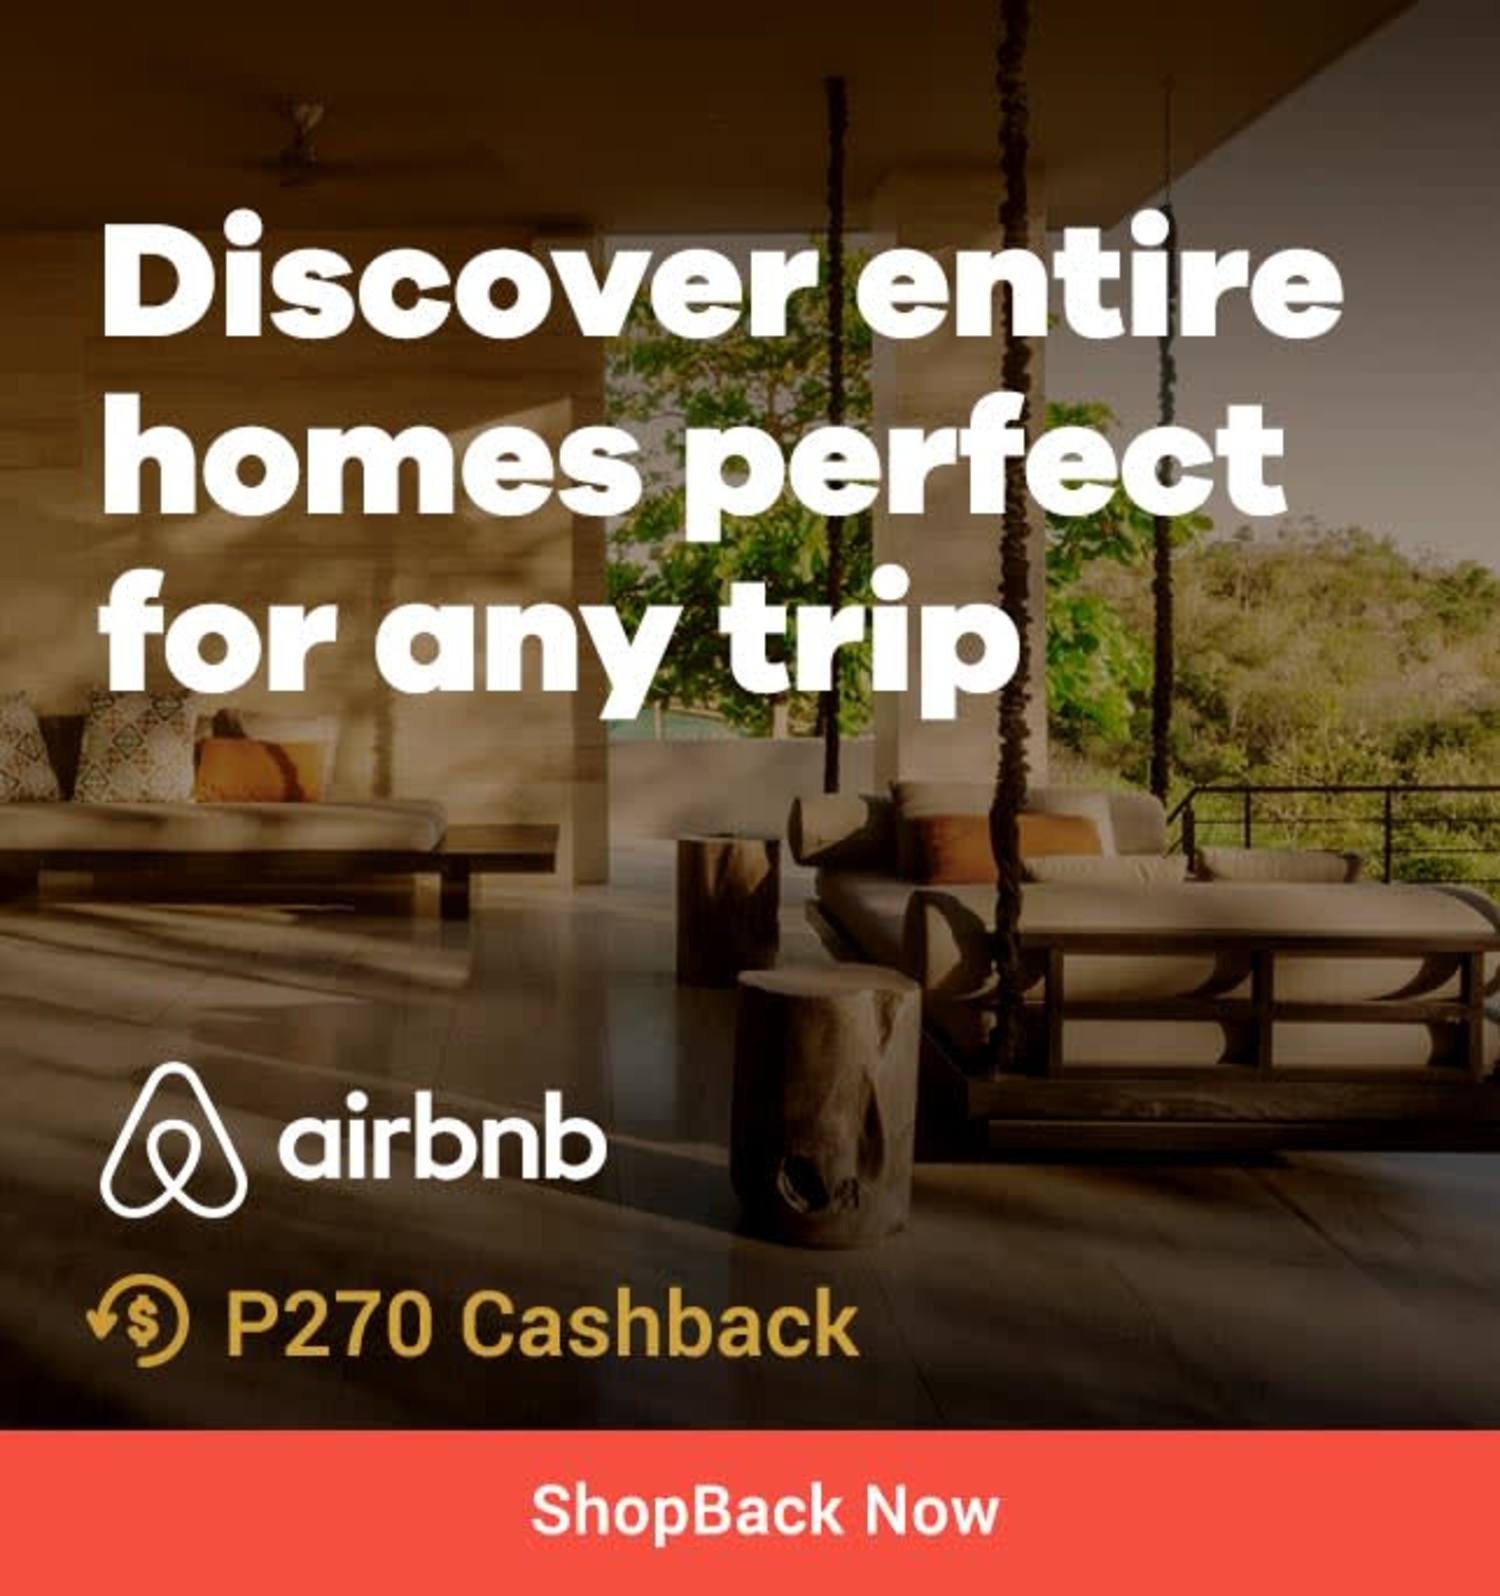 Airbnb Discover entire homes perfect for any trip + P270 Cashback